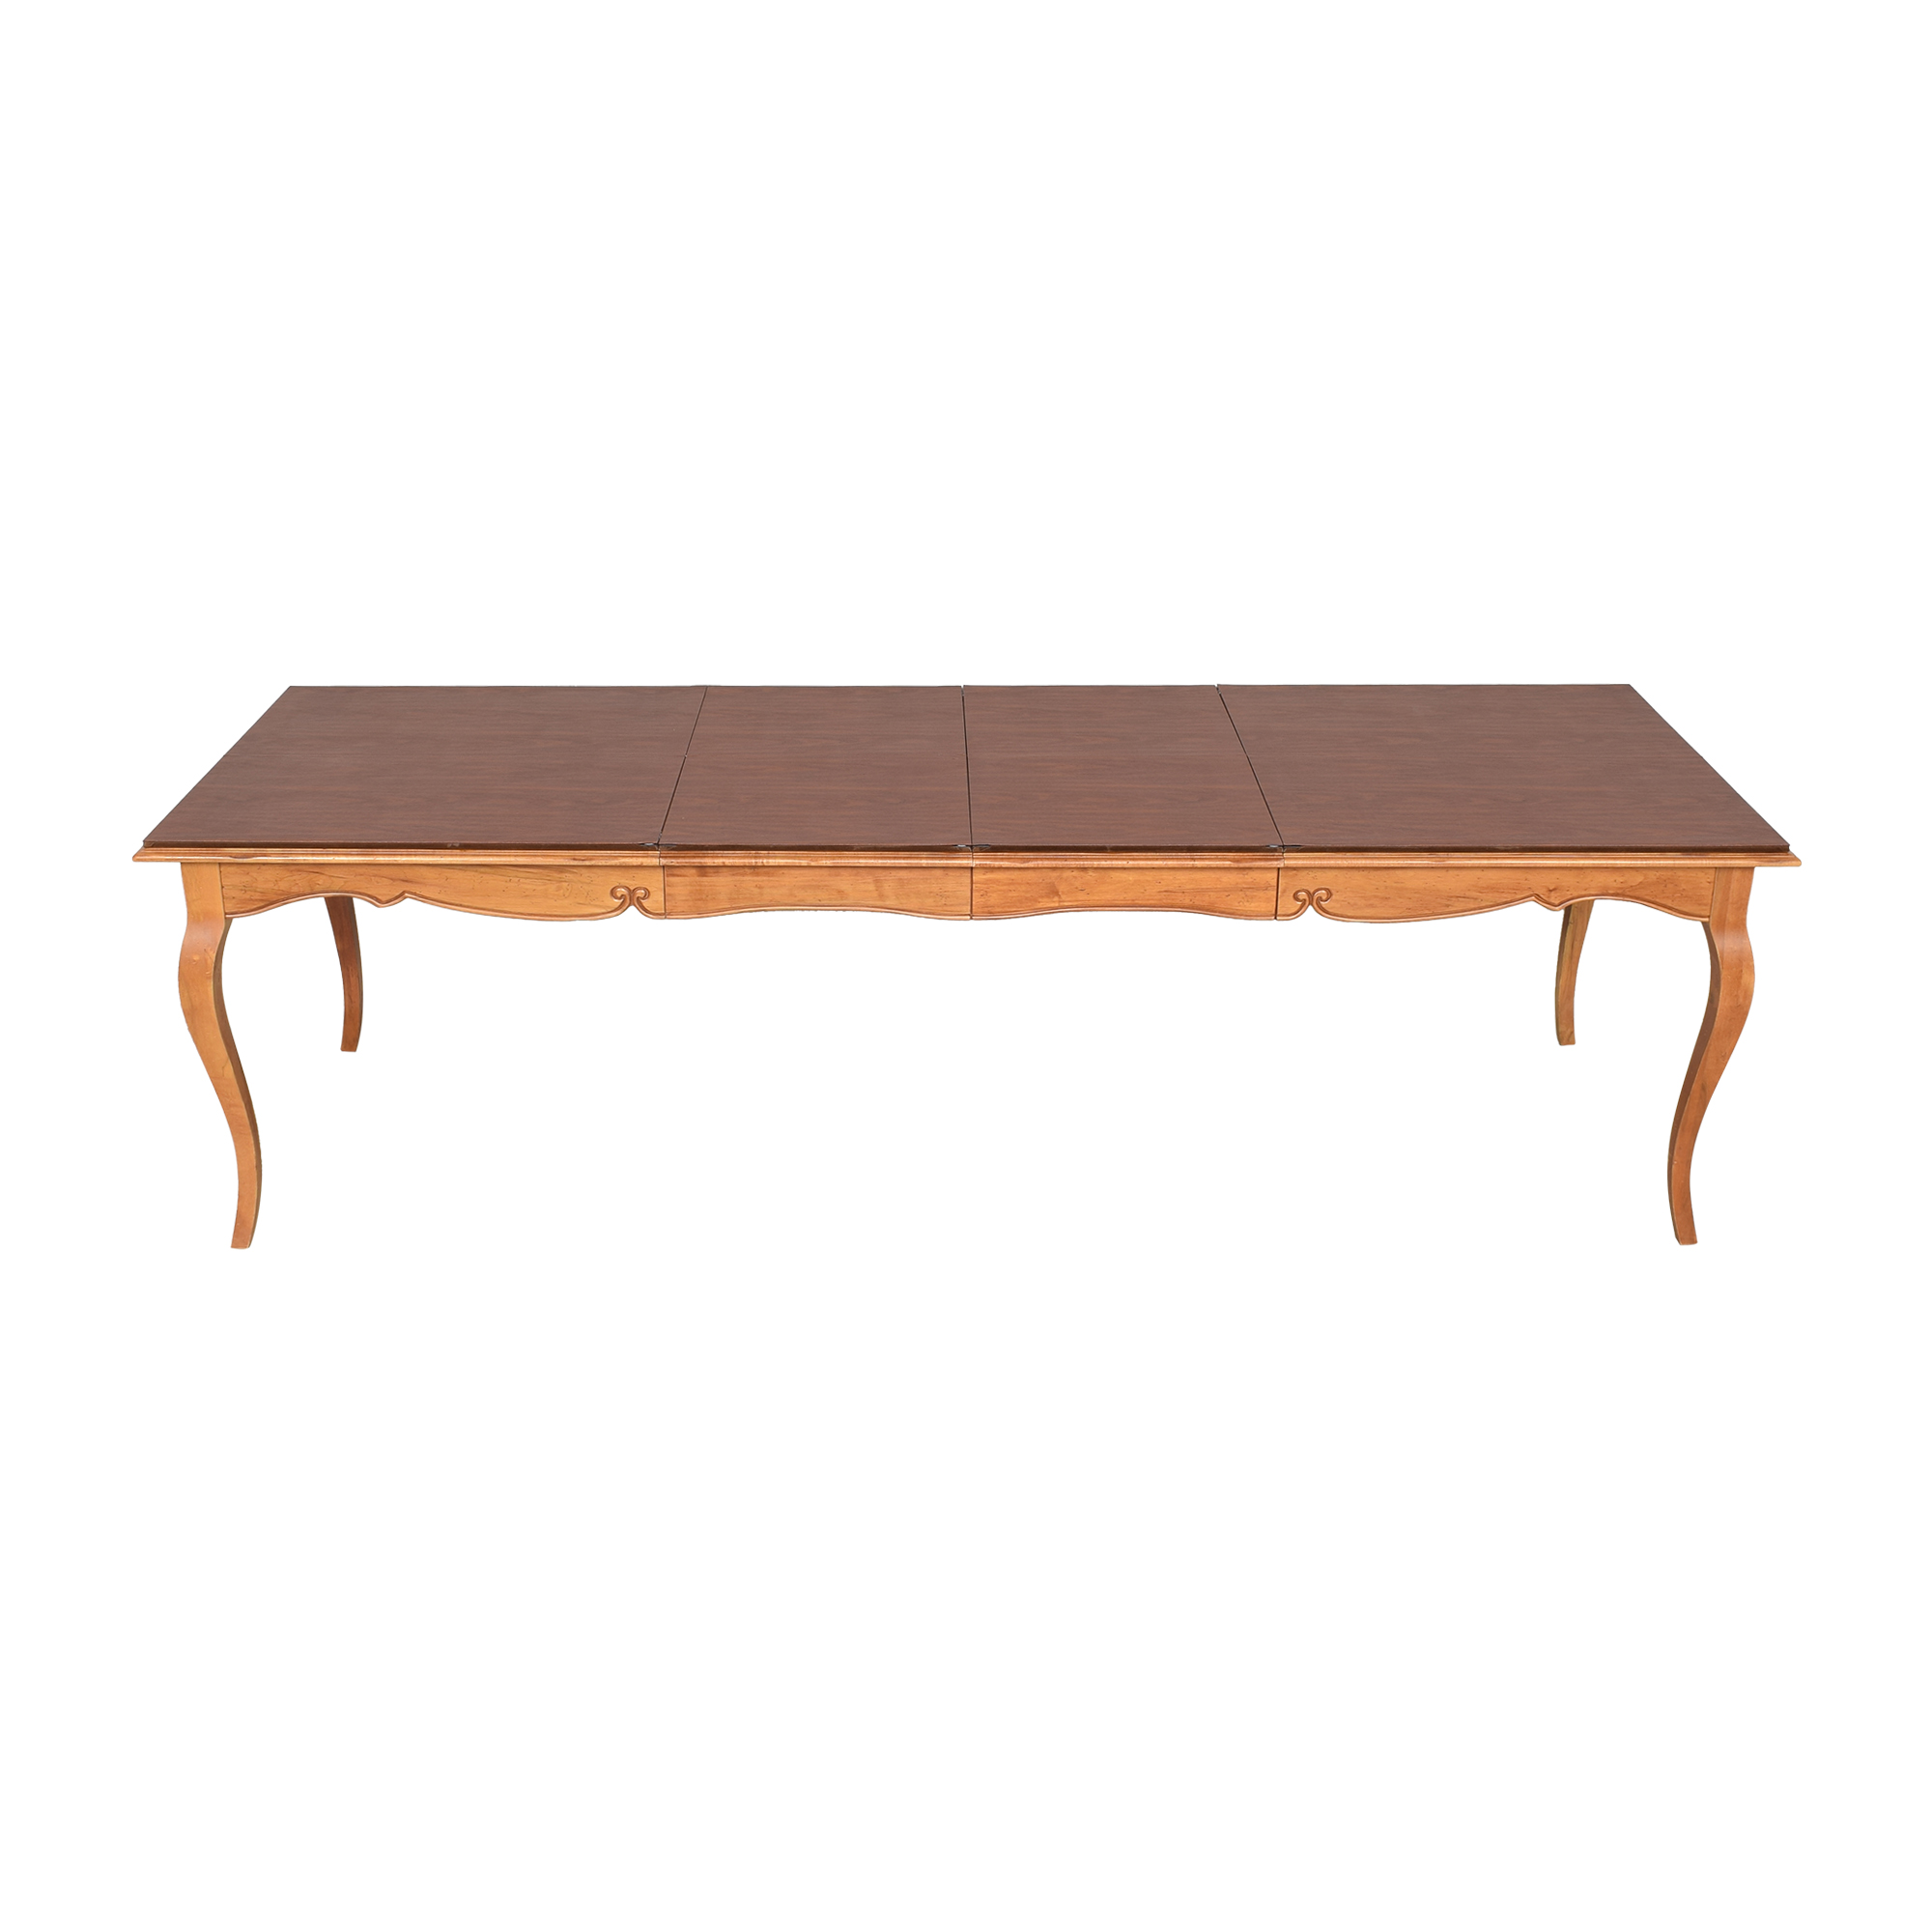 Ethan Allen Ethan Allen Legacy Collection Extendable Dining Table pa